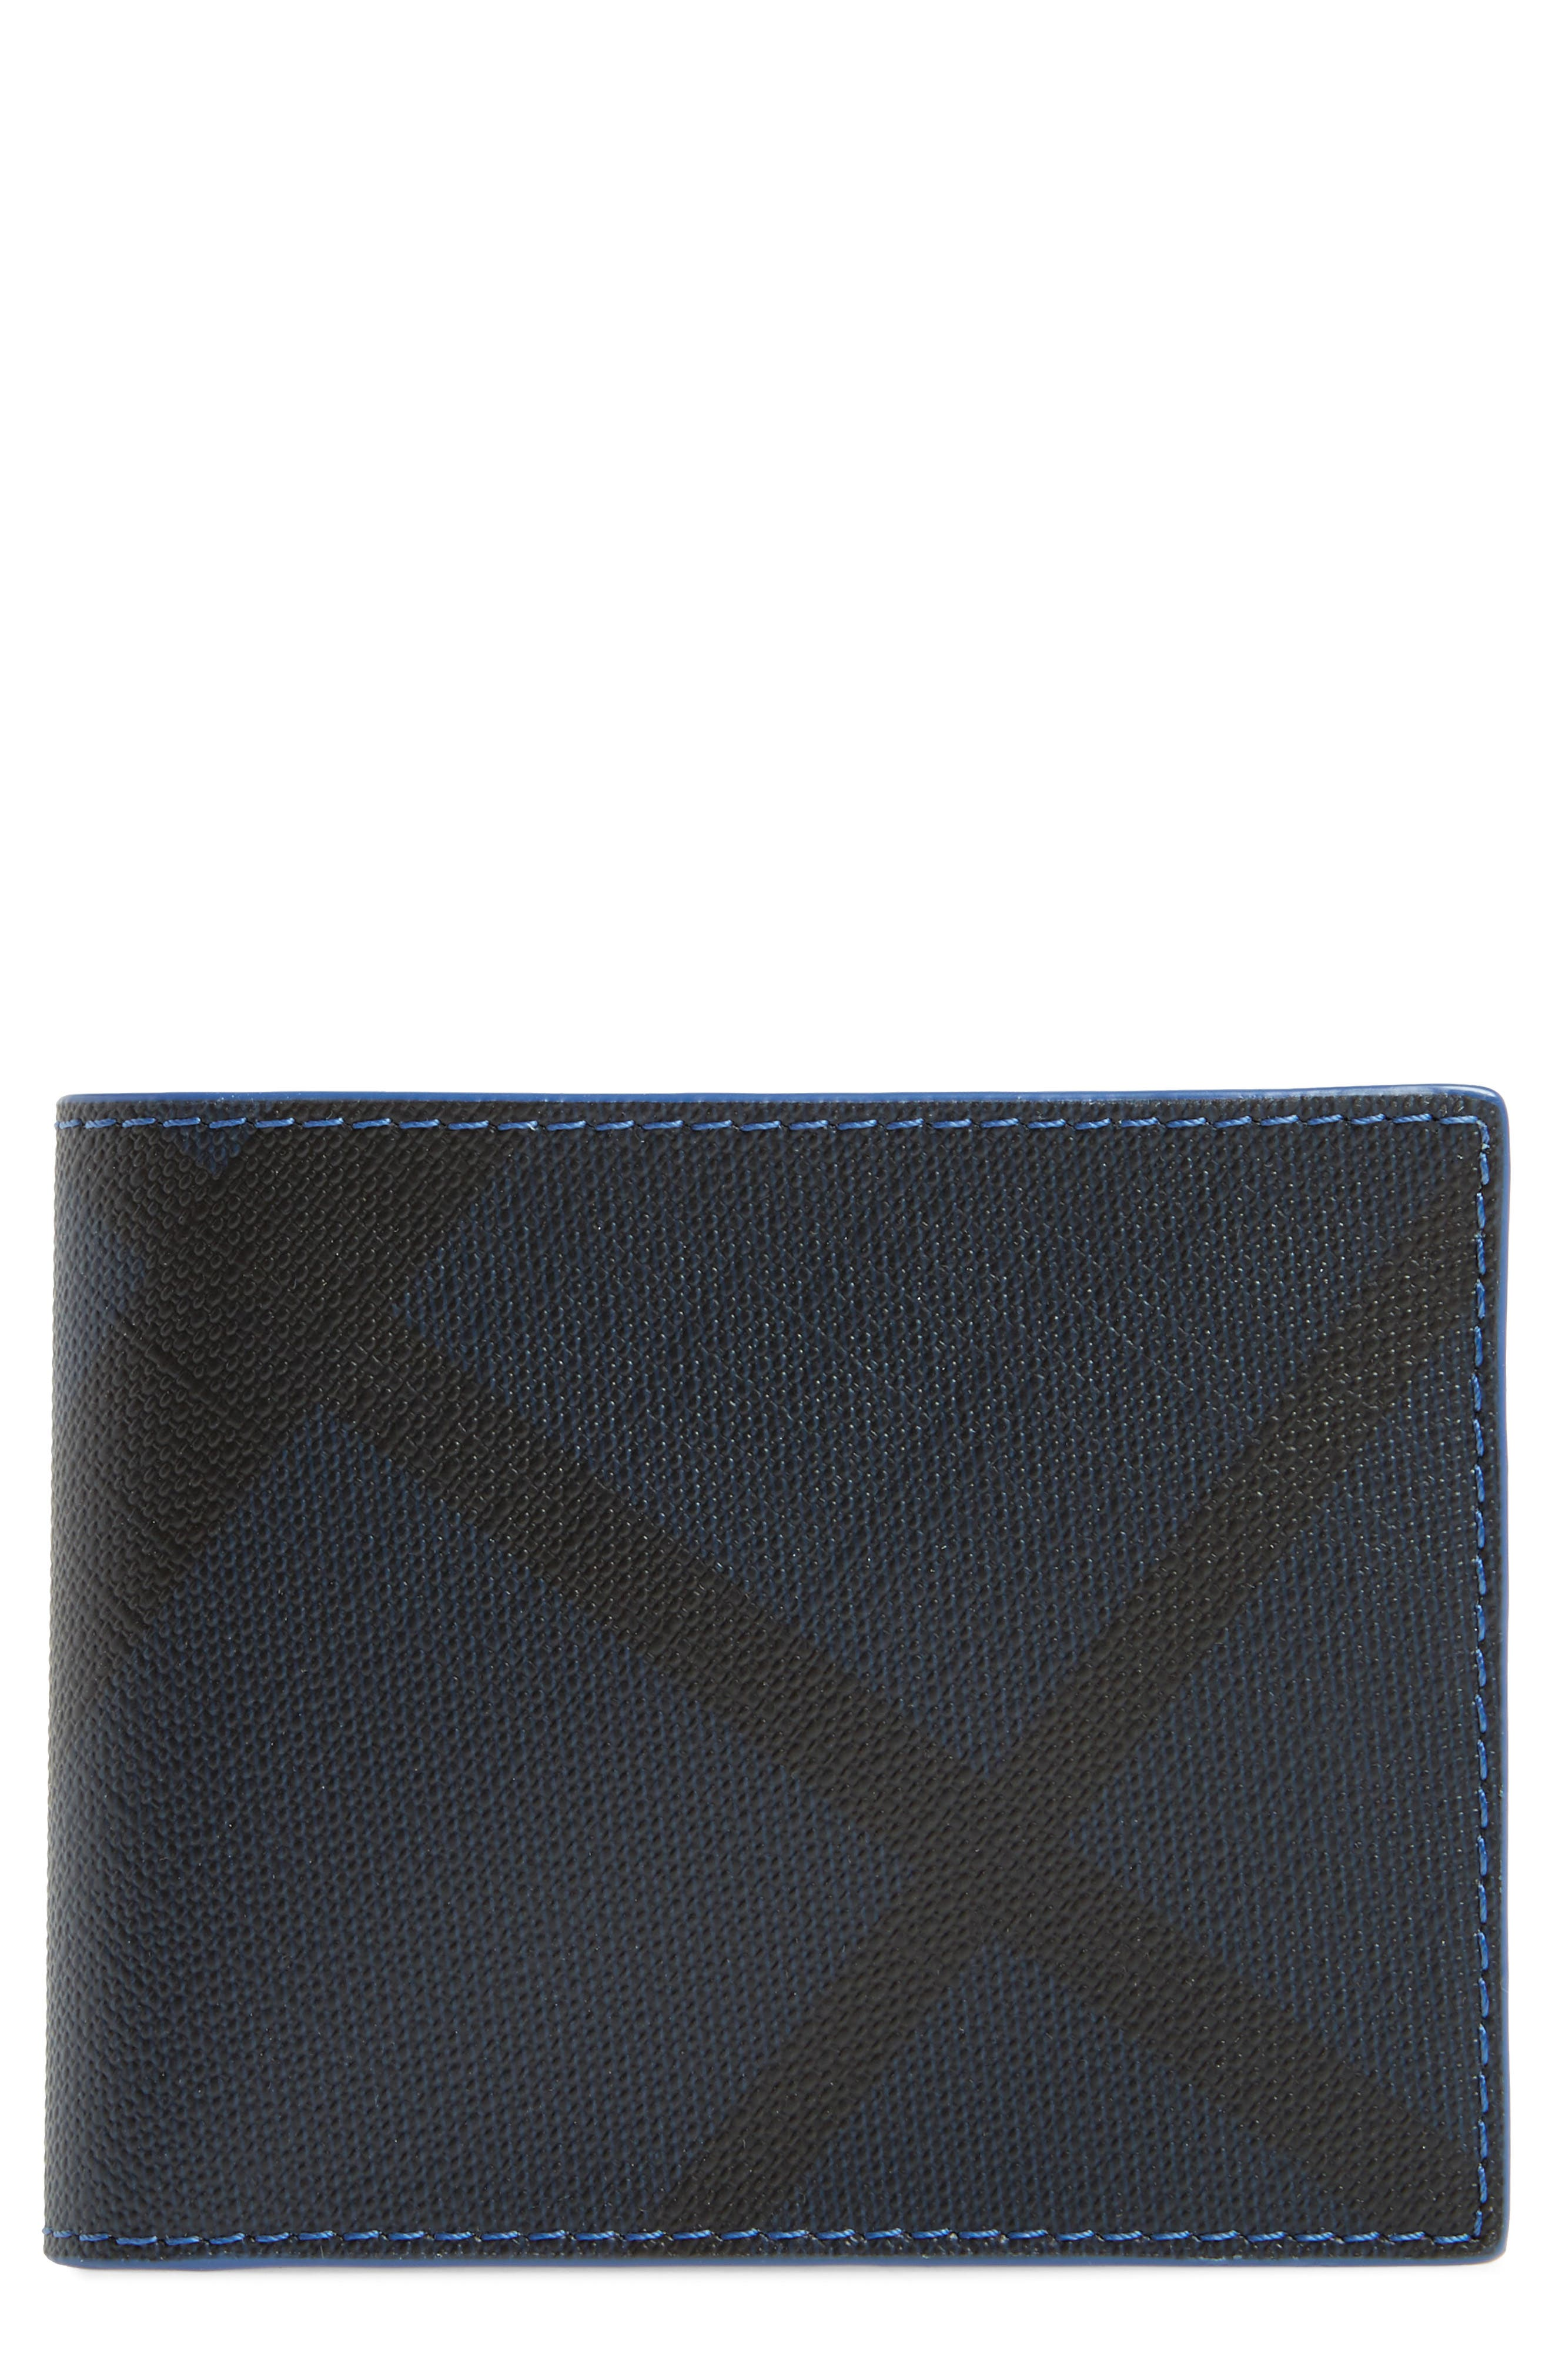 Check Faux Leather Wallet,                         Main,                         color, Navy/ Blue